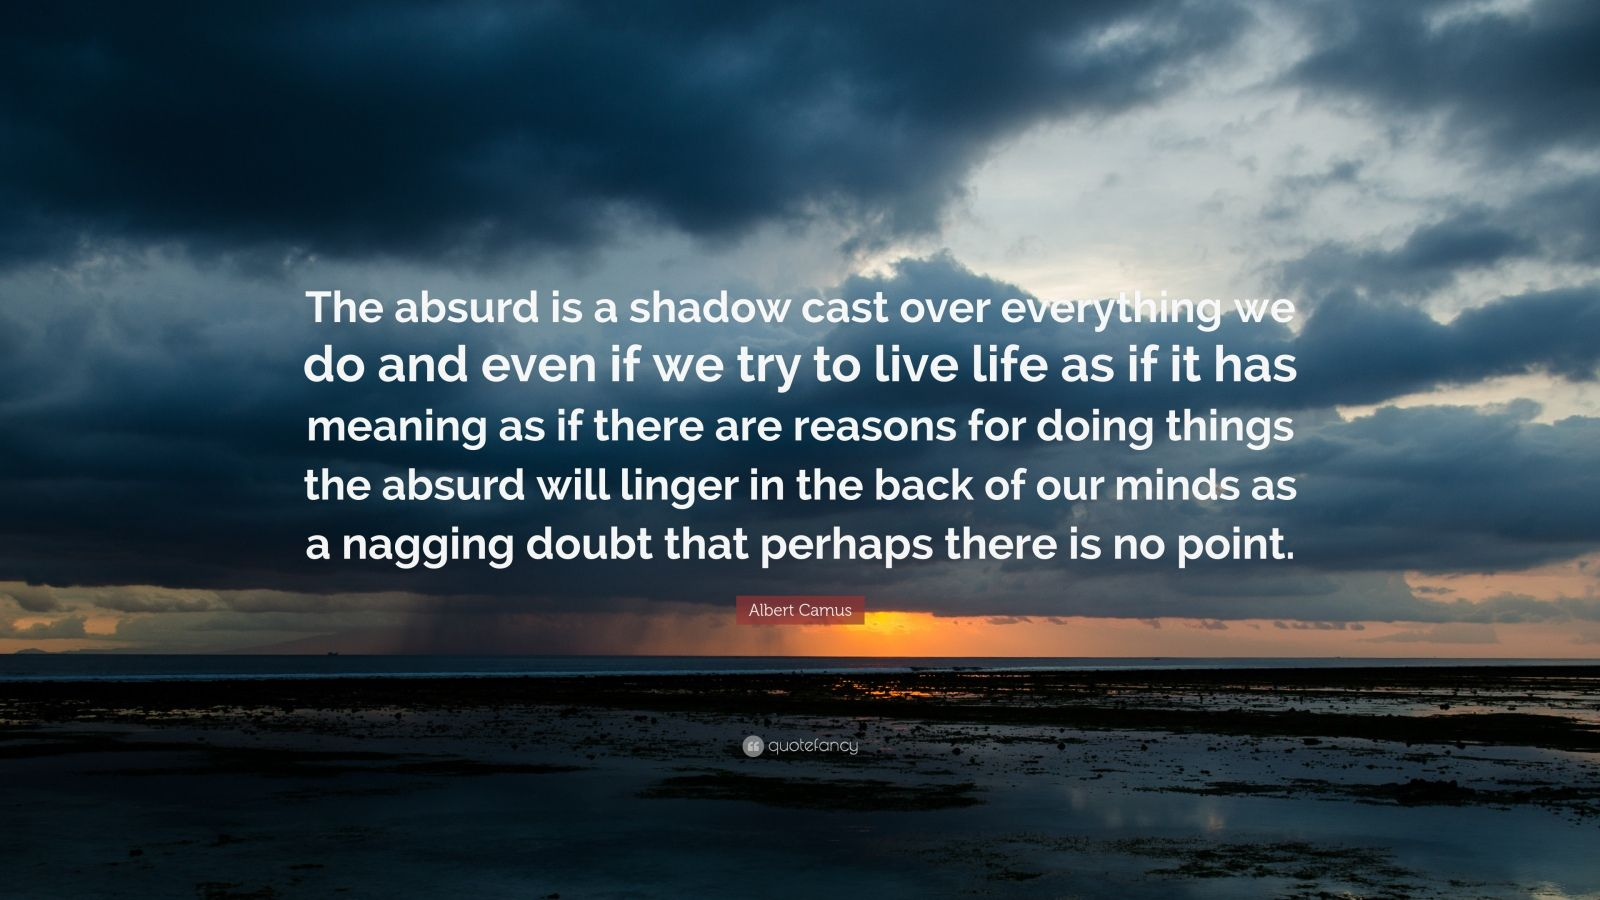 "Albert Camus Quote: ""The absurd is a shadow cast over everything we do and even if we try to live life as if it has meaning as if there are reasons for doing things the absurd will linger in the back of our minds as a nagging doubt that perhaps there is no point."""